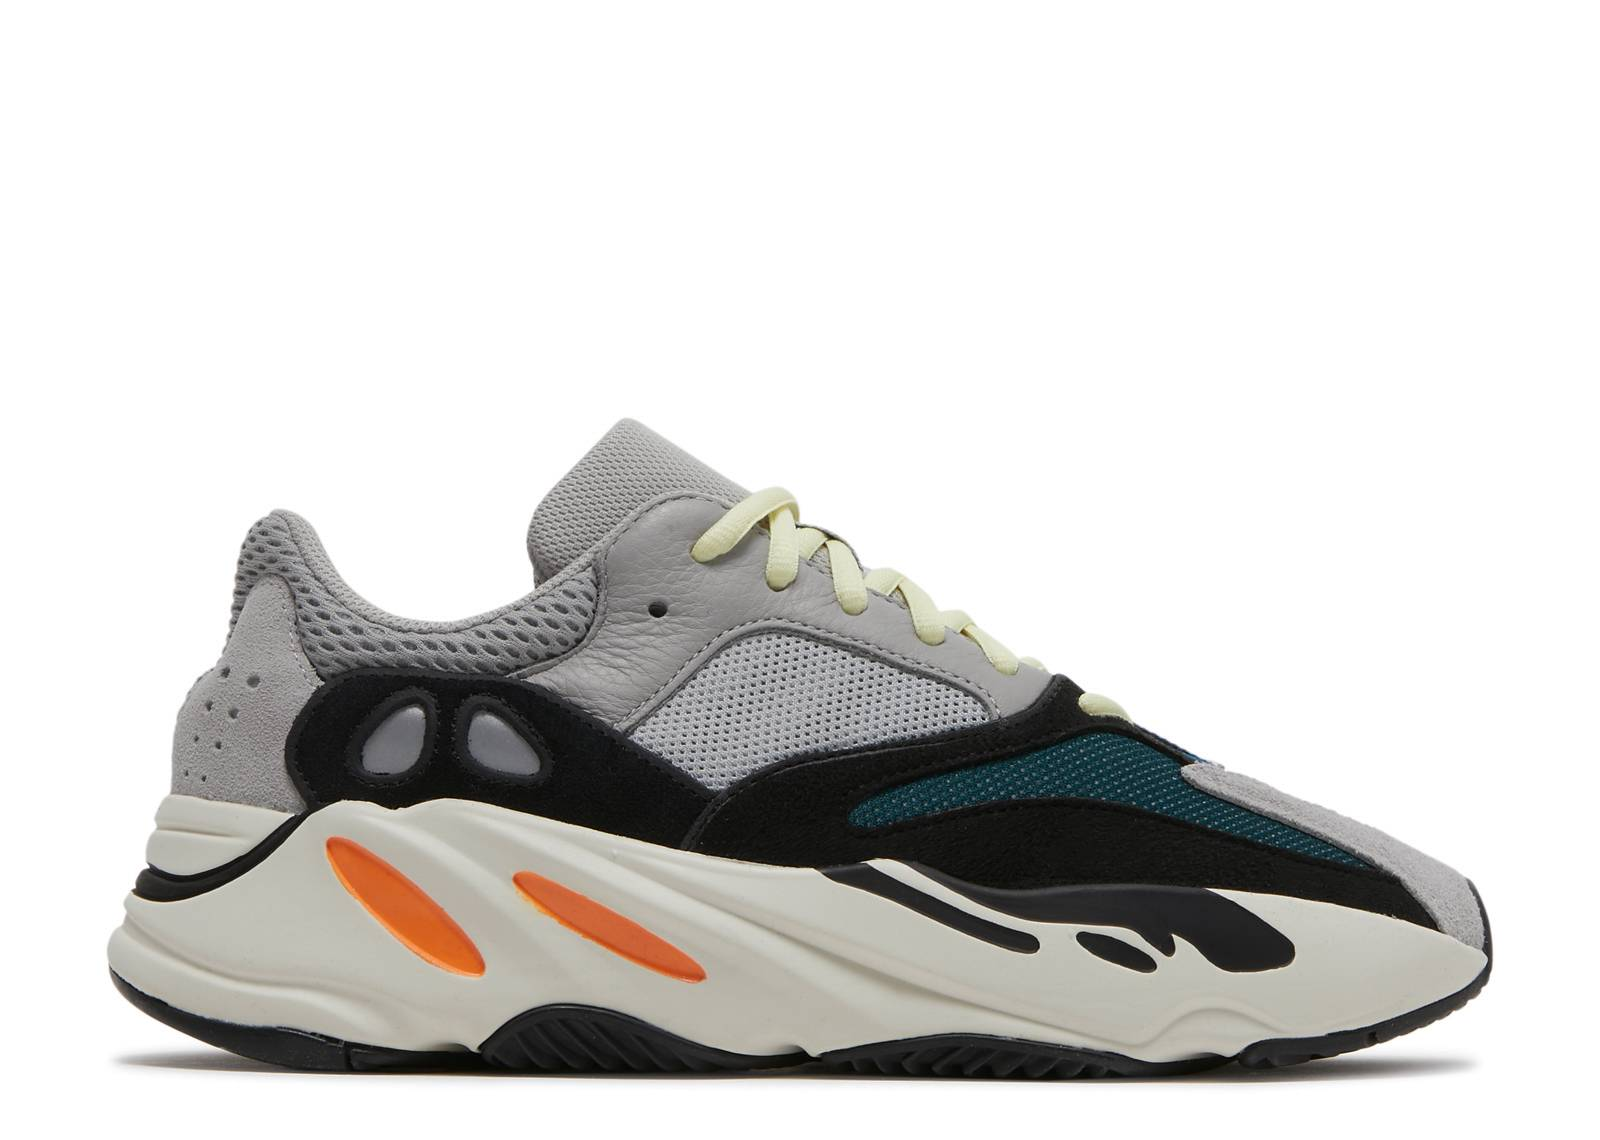 official photos df7fe cd9bf yeezy boost 700